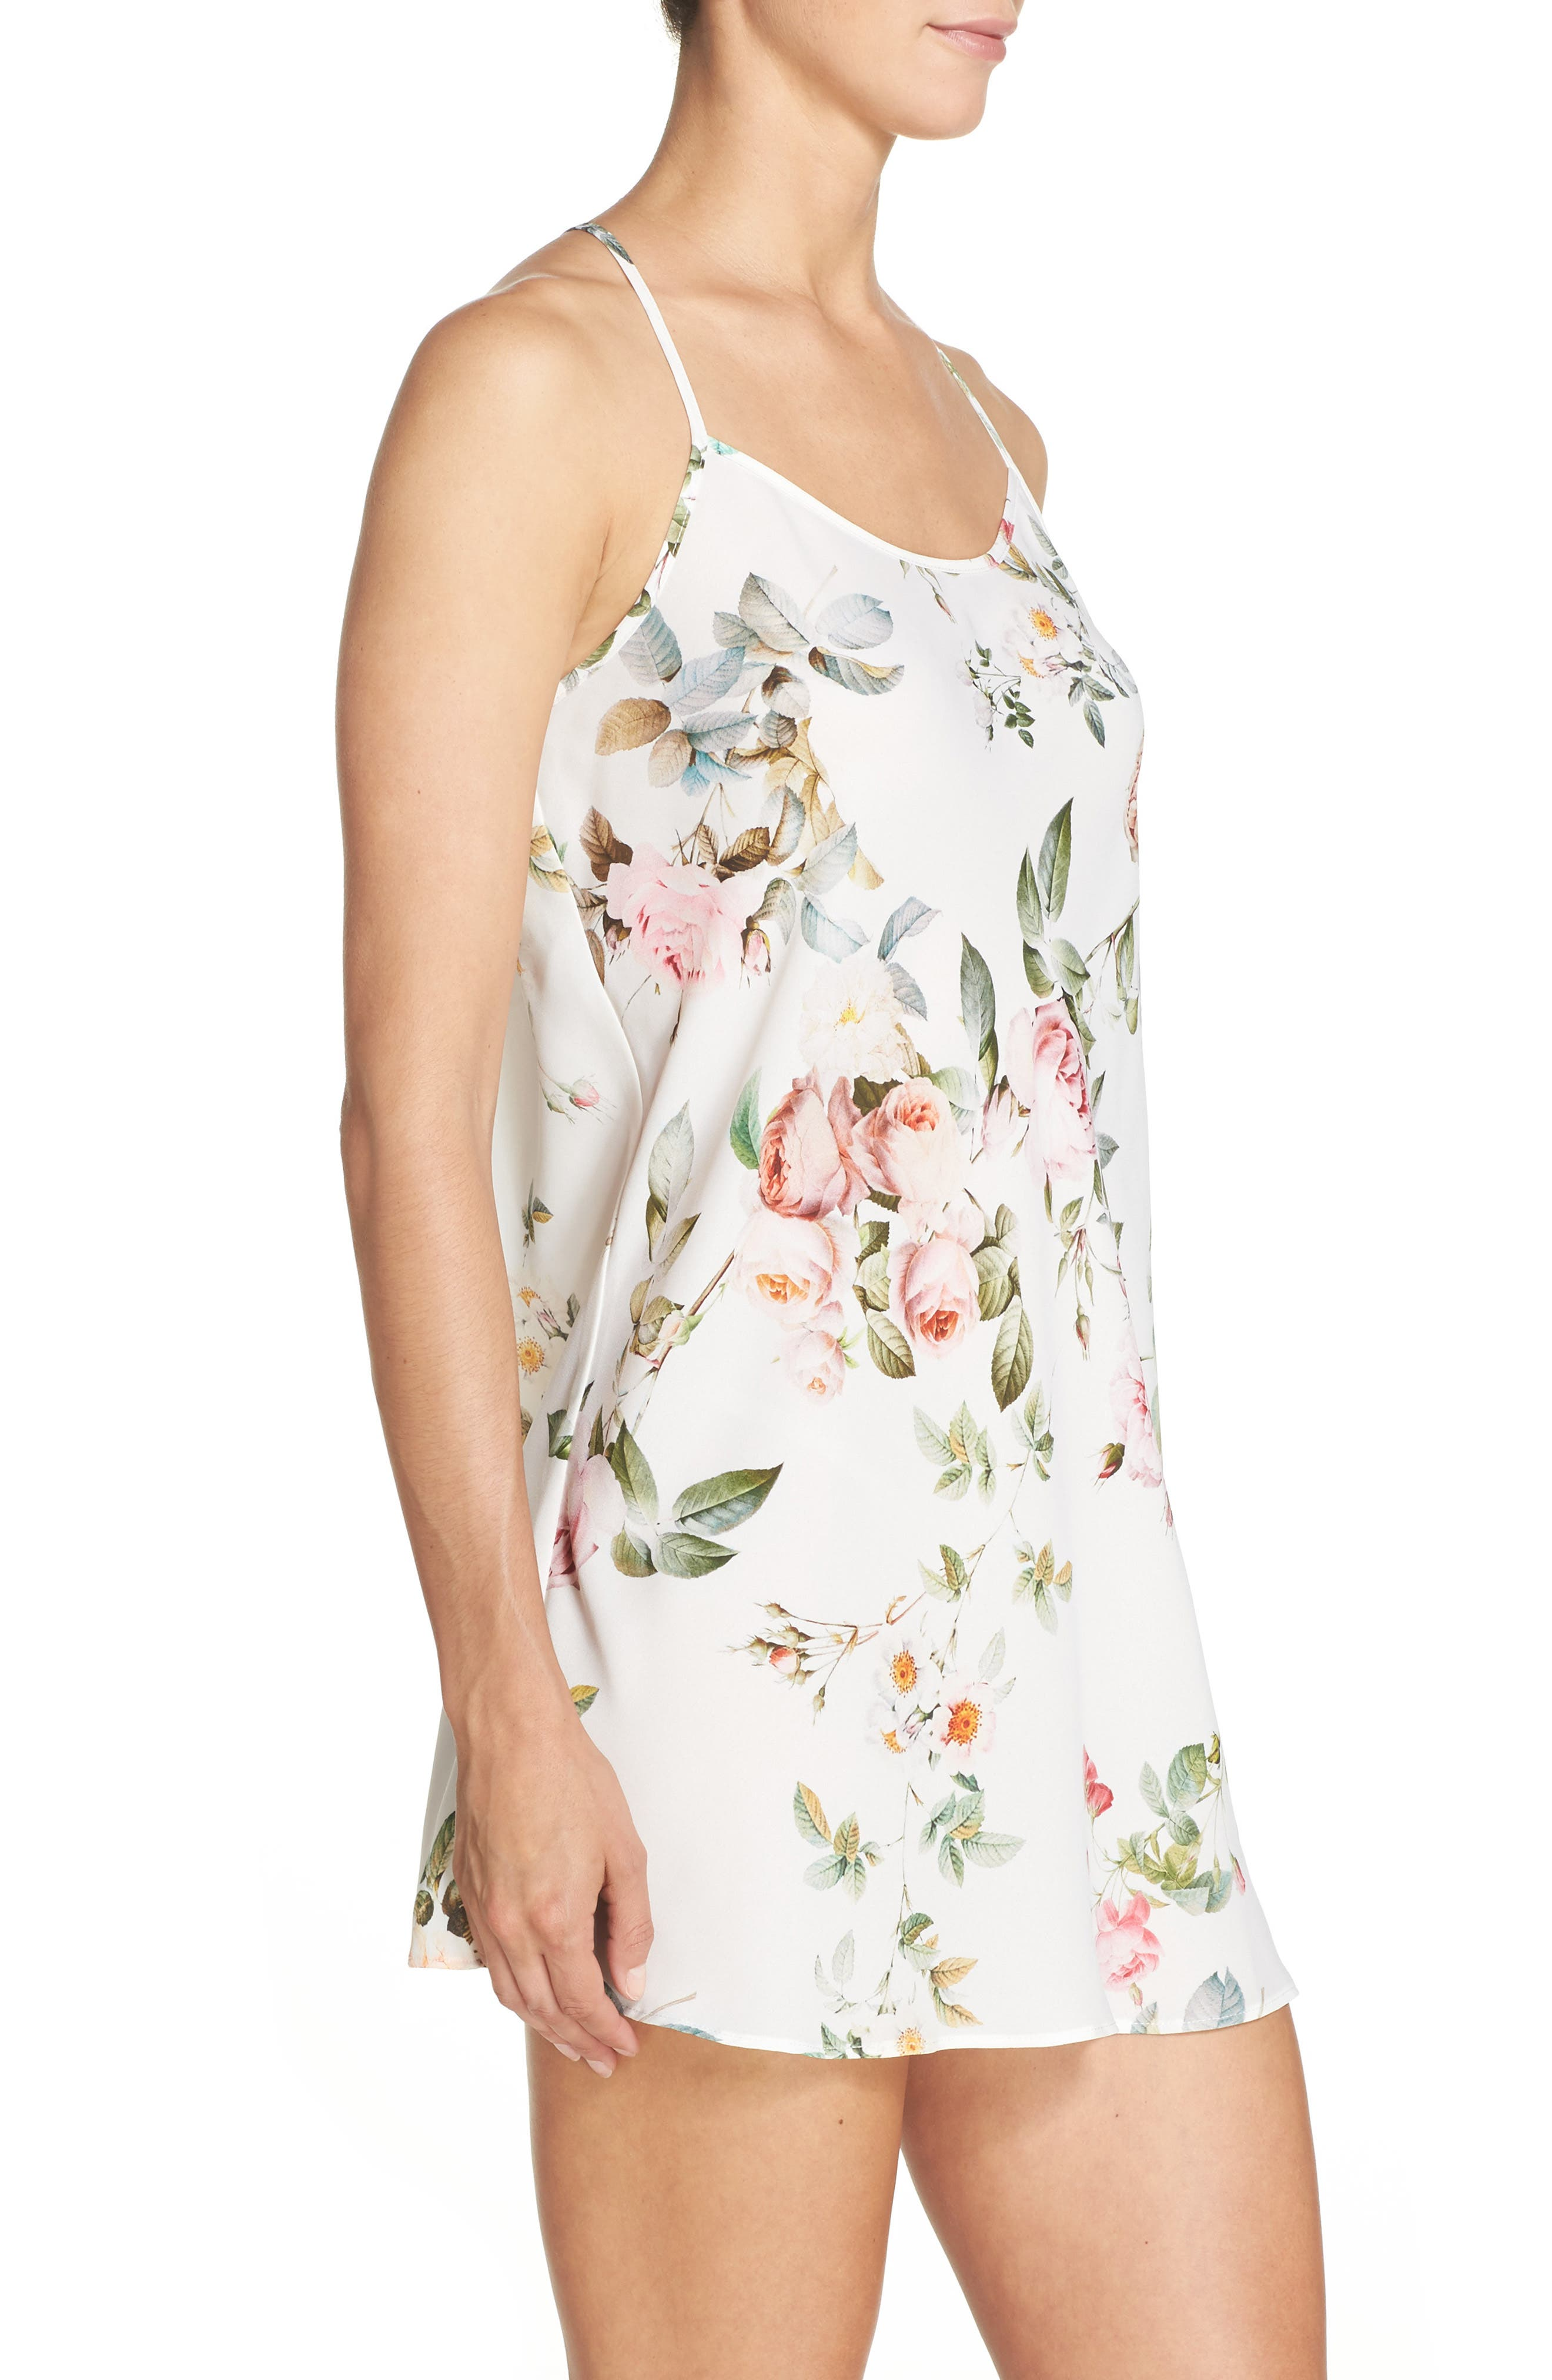 Abigal Chemise,                             Alternate thumbnail 3, color,                             Ivory Floral